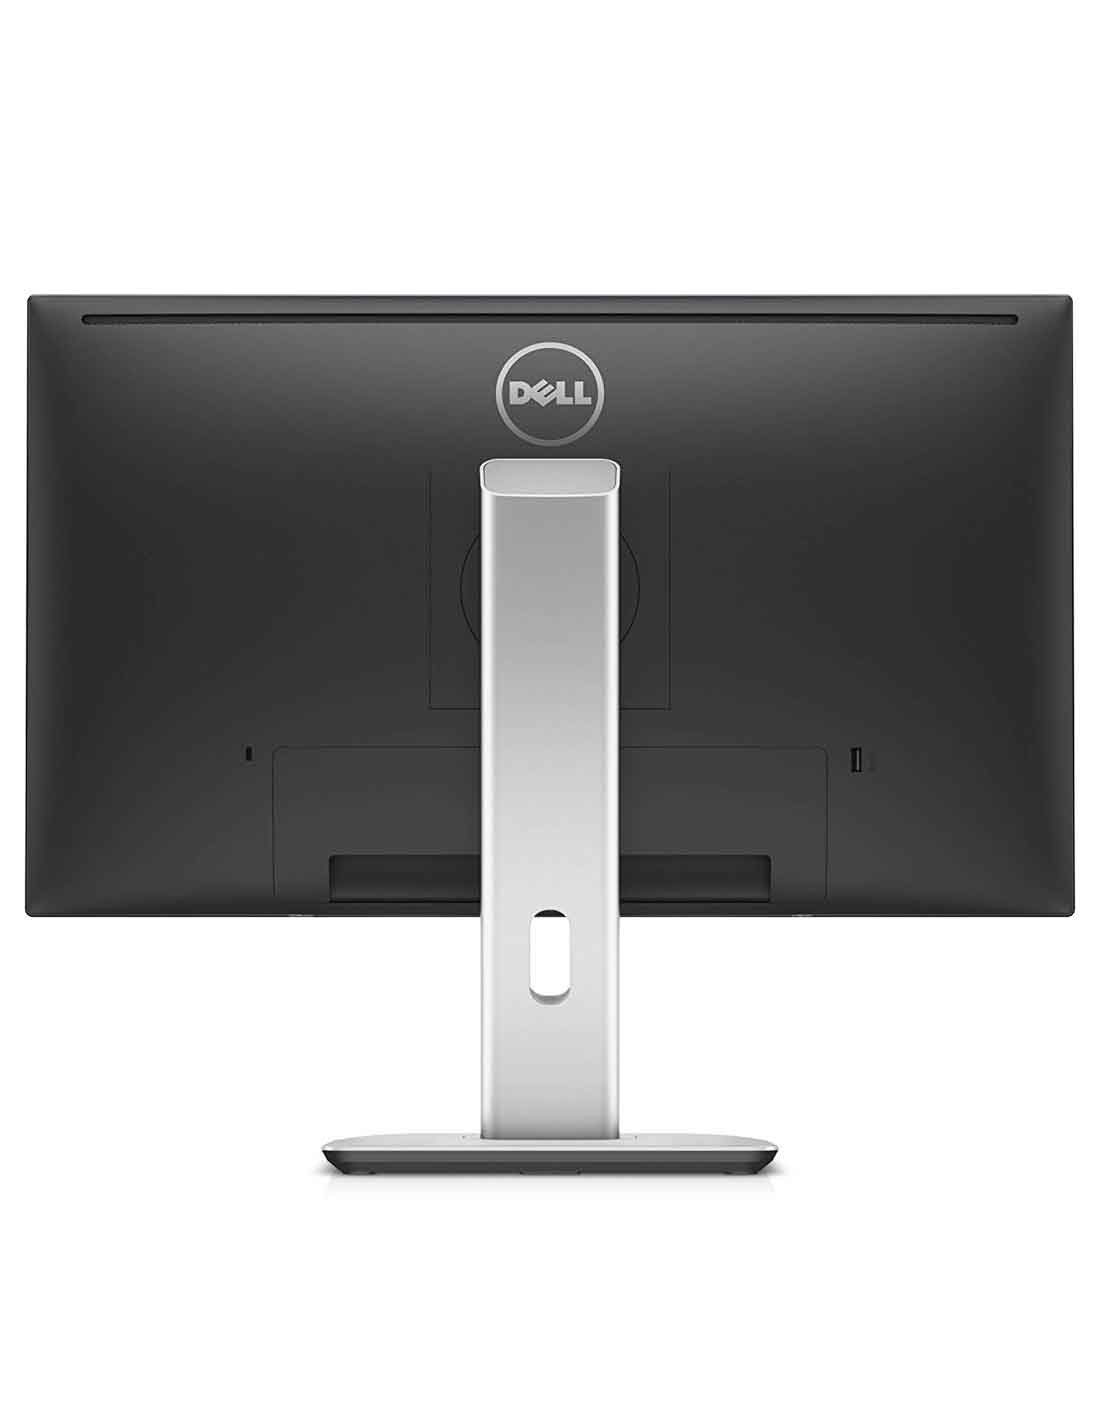 Dell UltraSharp 24-inch Monitor U2414H specs images and photos in Dubai online store